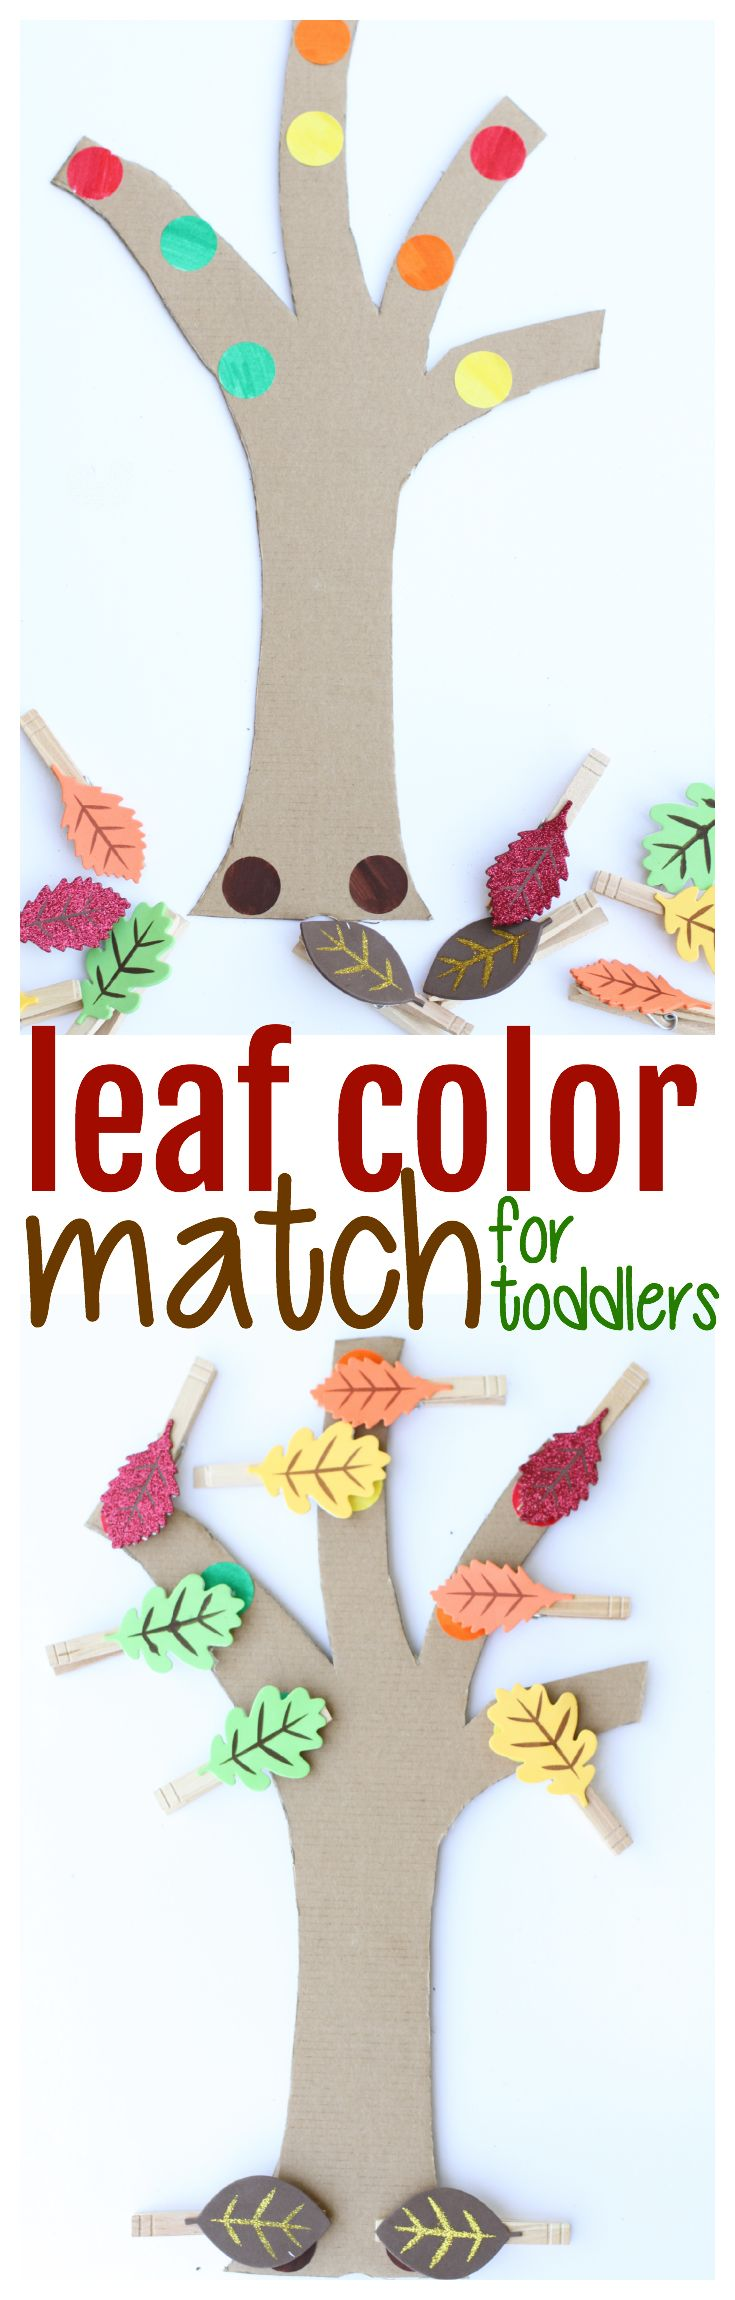 Activities for colors for toddlers - Leaf Color Match For Toddlers